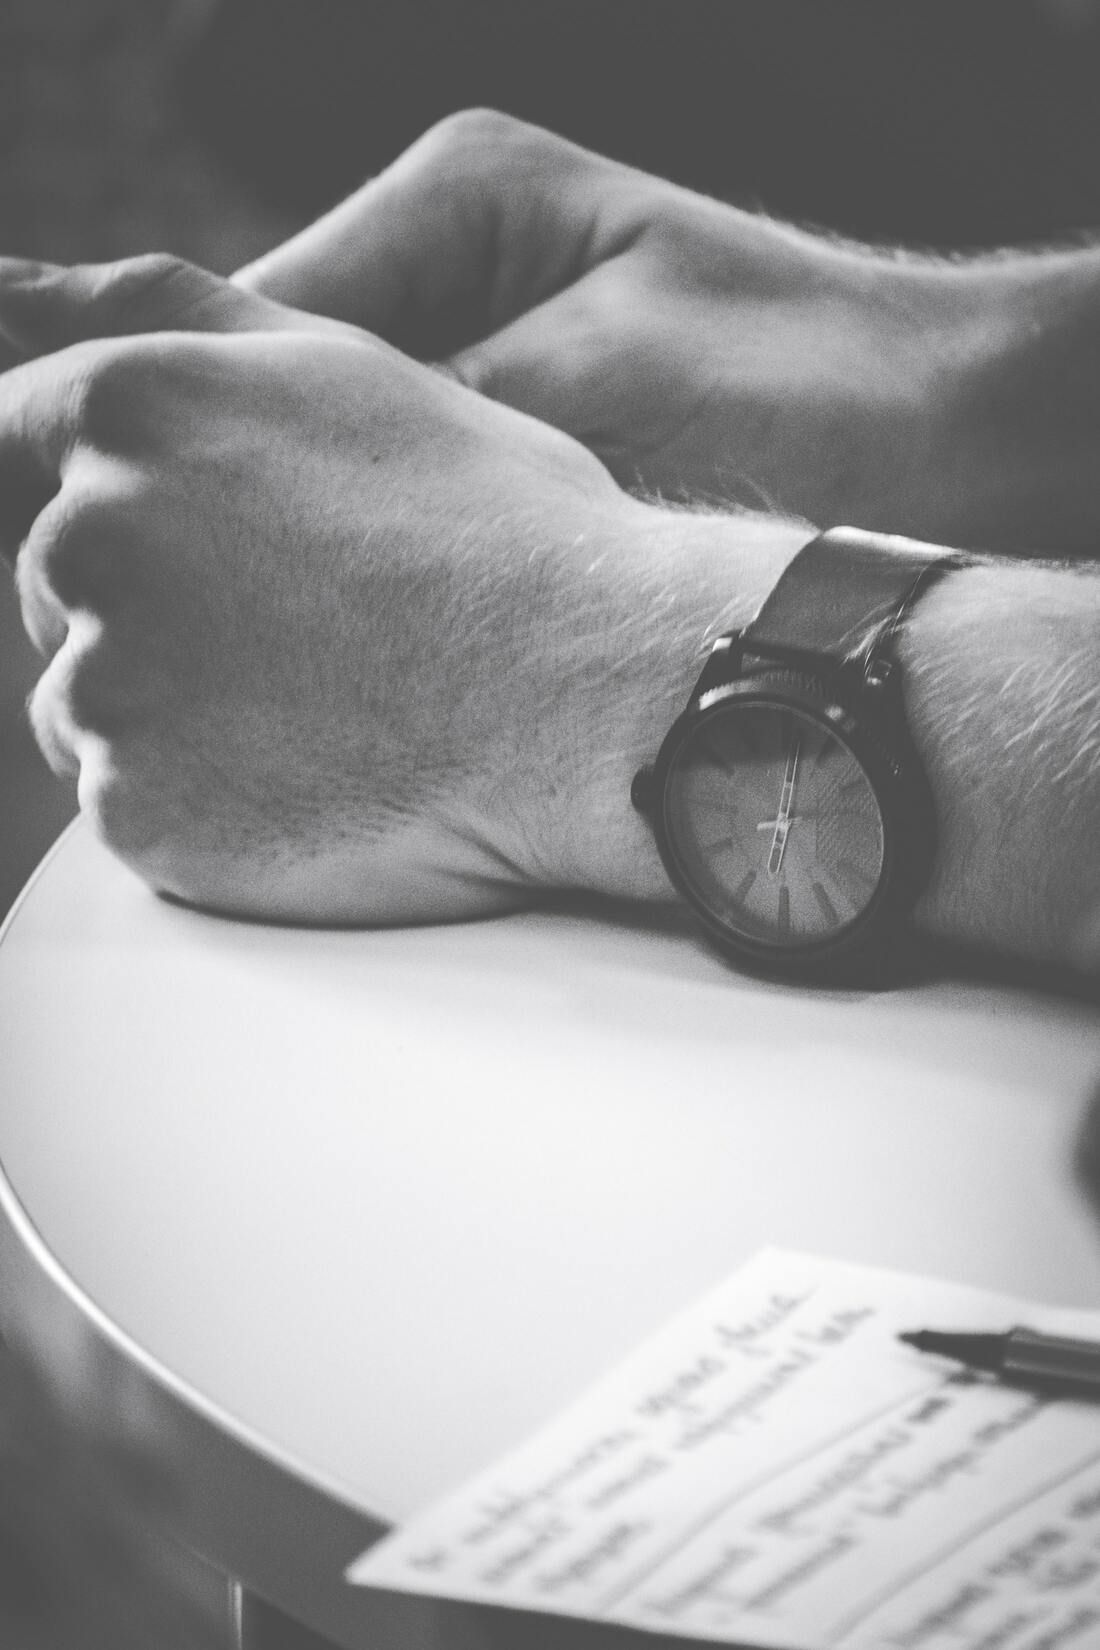 A person tracks time on their freelance project using their wristwatch